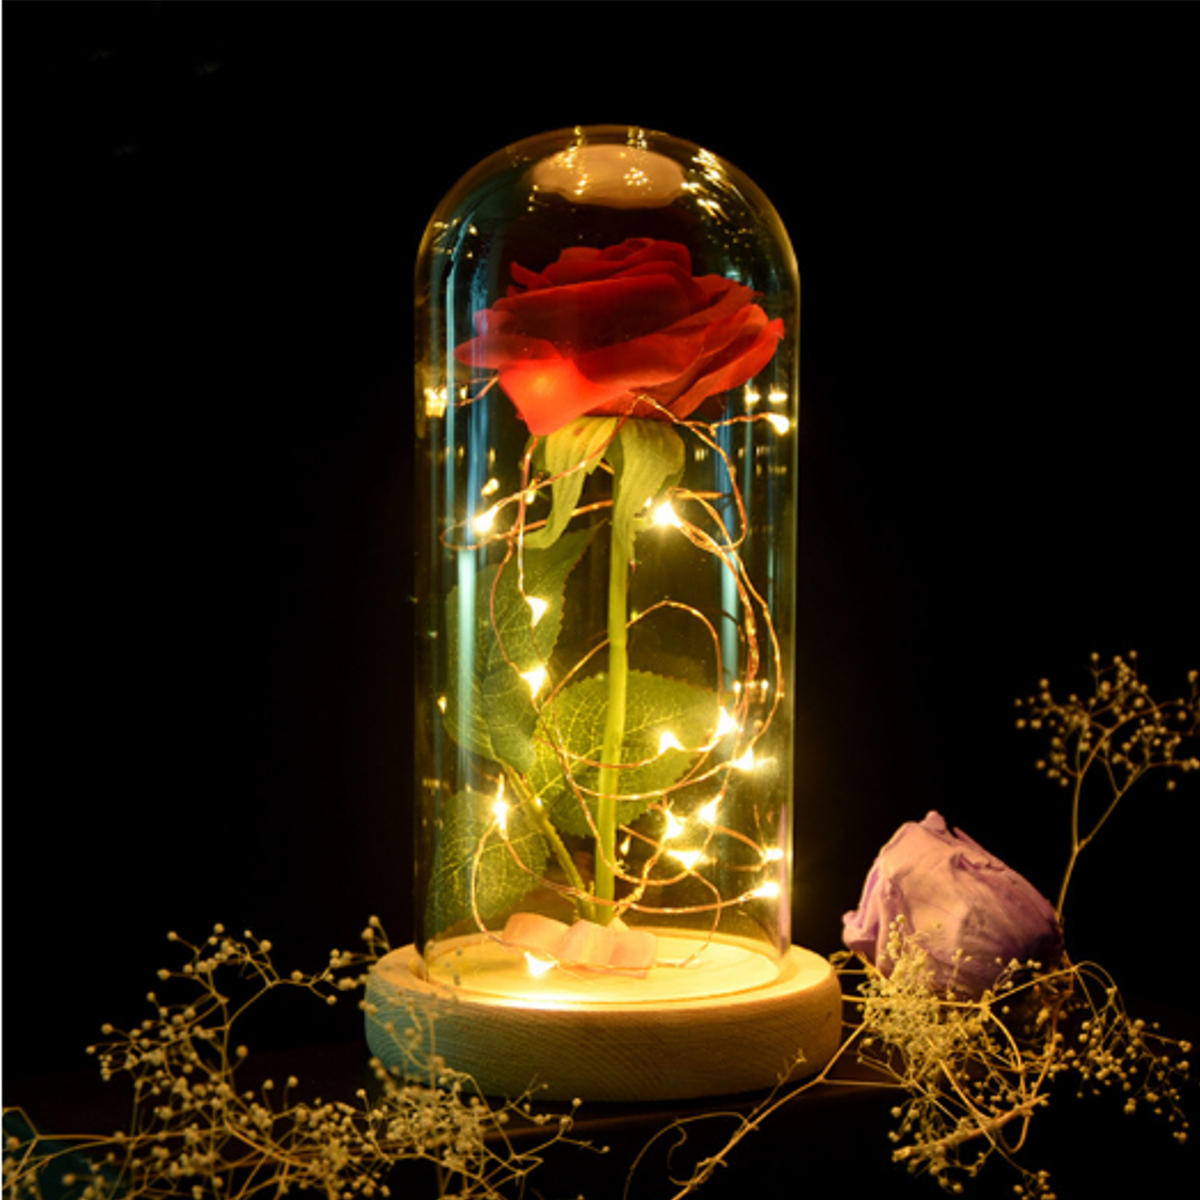 Red Rose Lights Decorations Beauty Enchanted Conserveed Red Fresh Rose Glass Cover met LED-licht